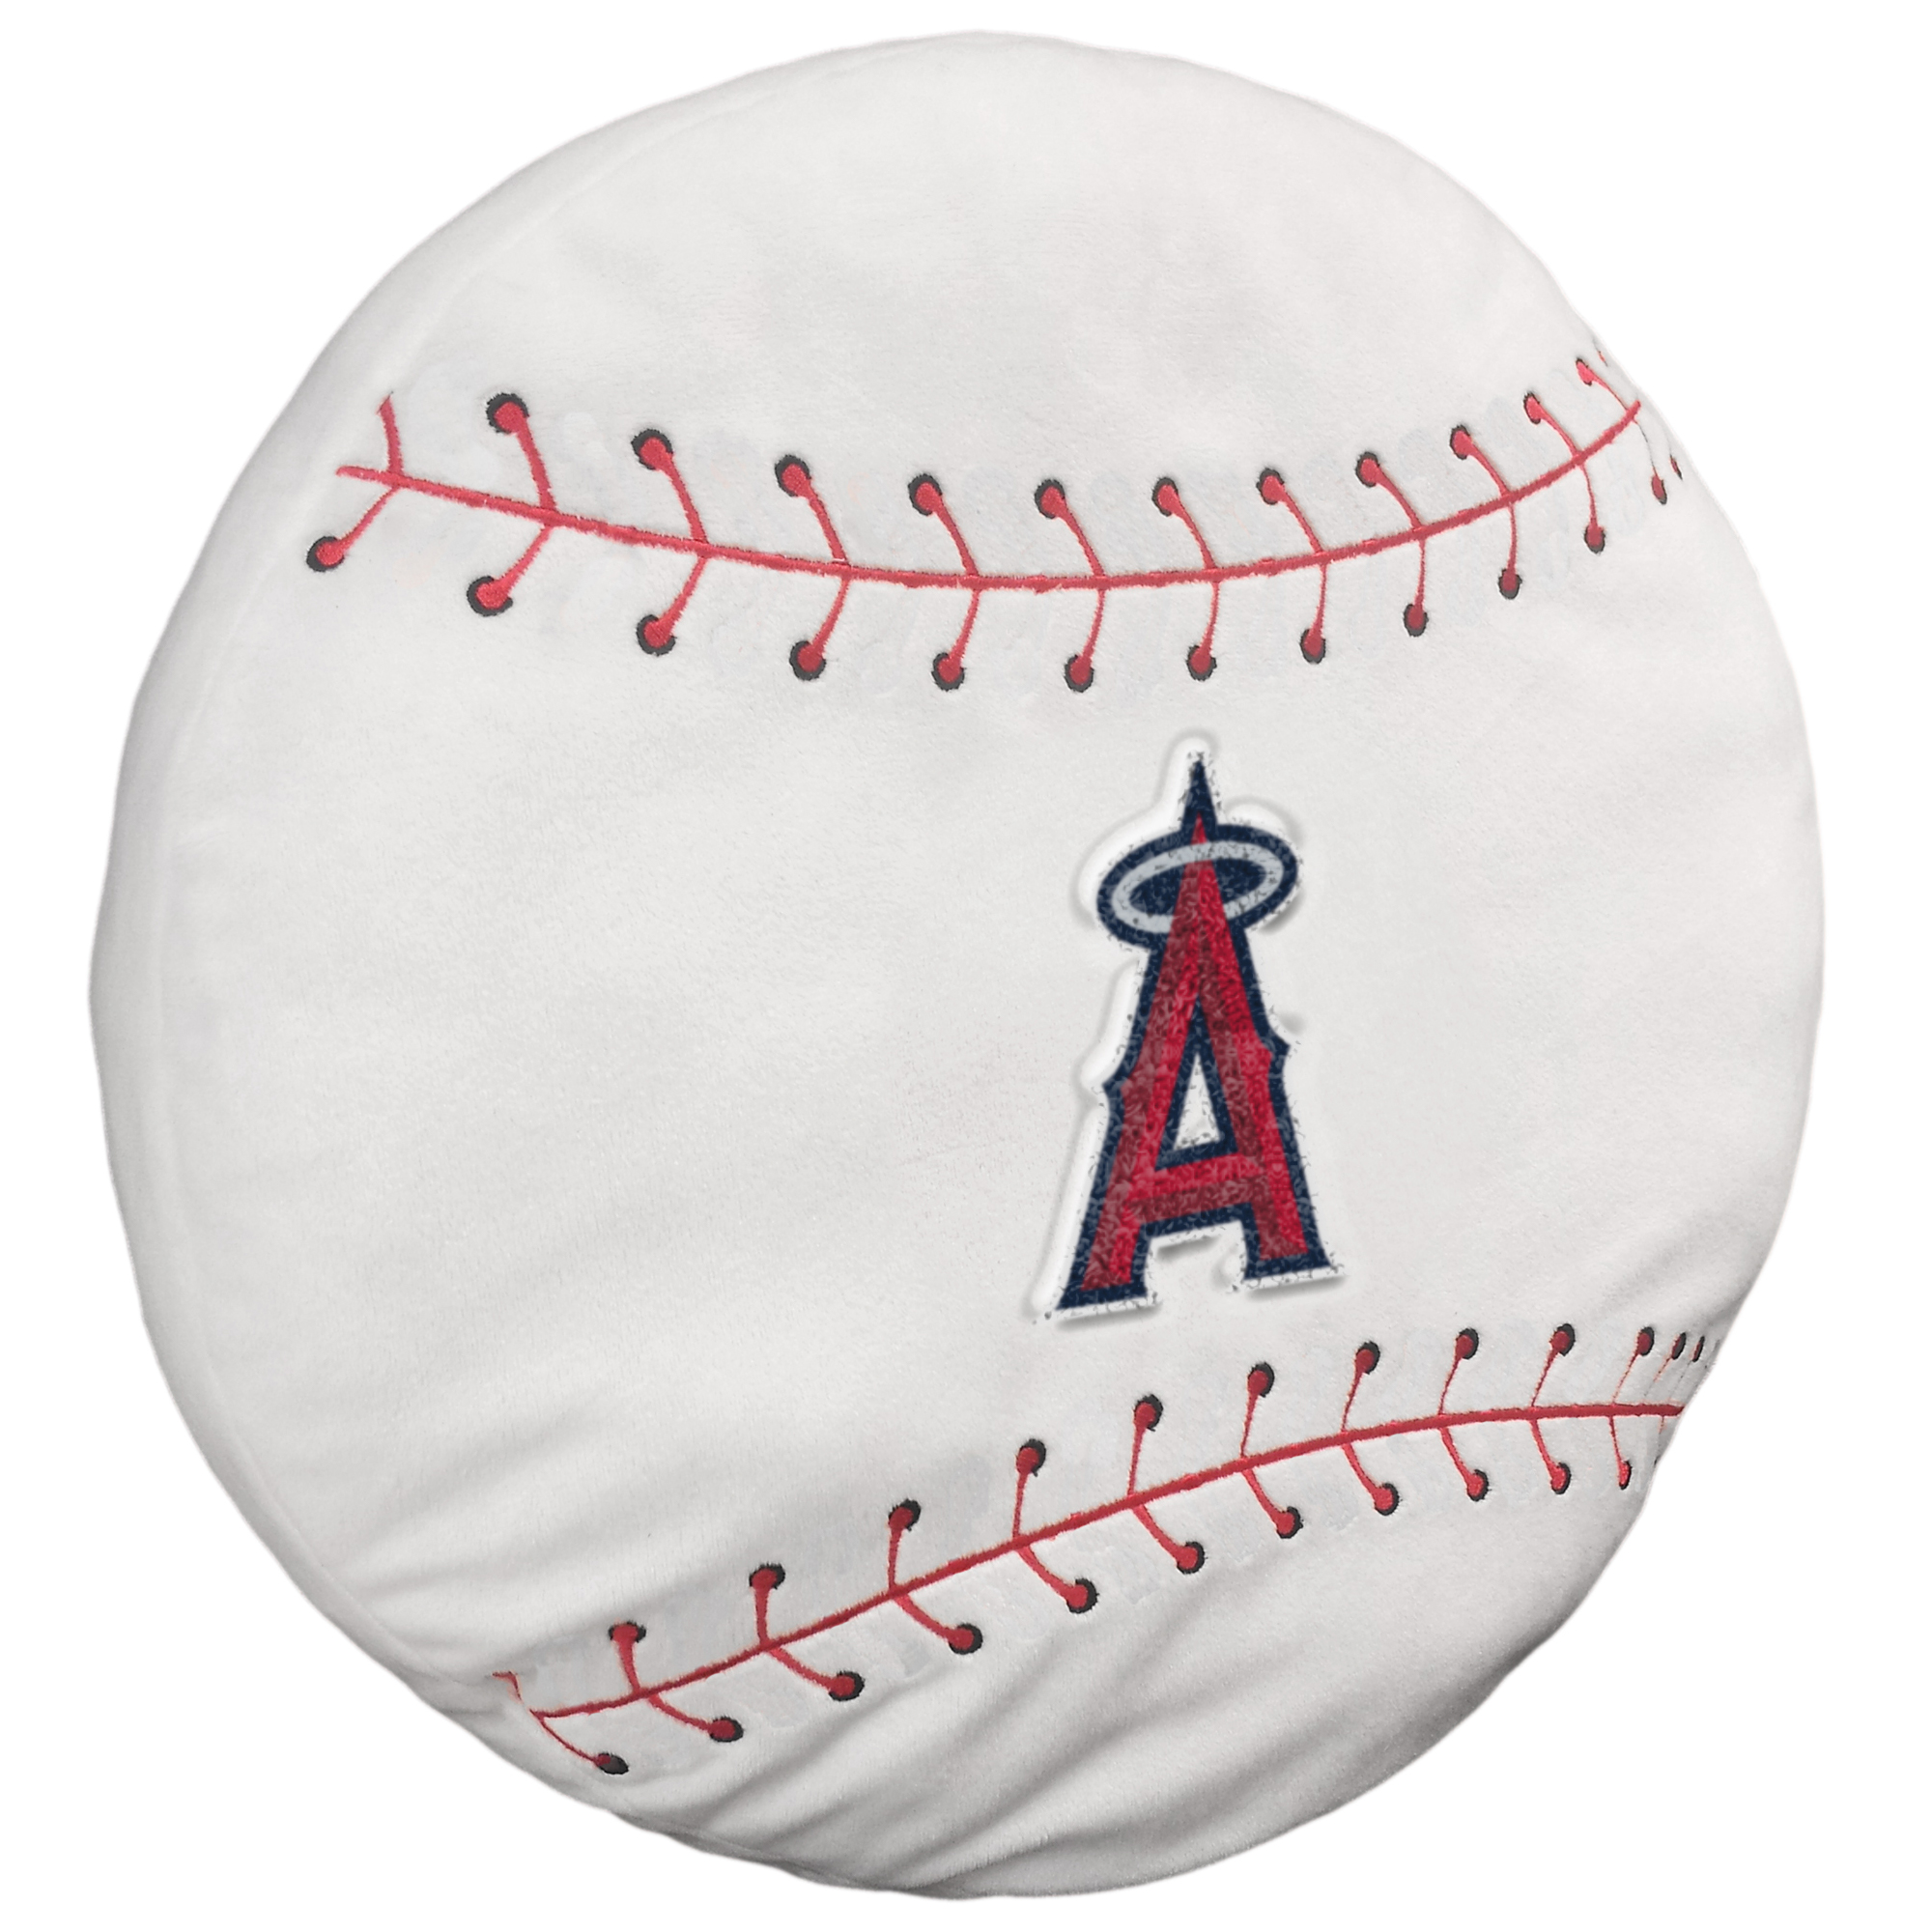 Los Angeles Angels The Northwest Company 15'' 3D Sports Pillow - No Size